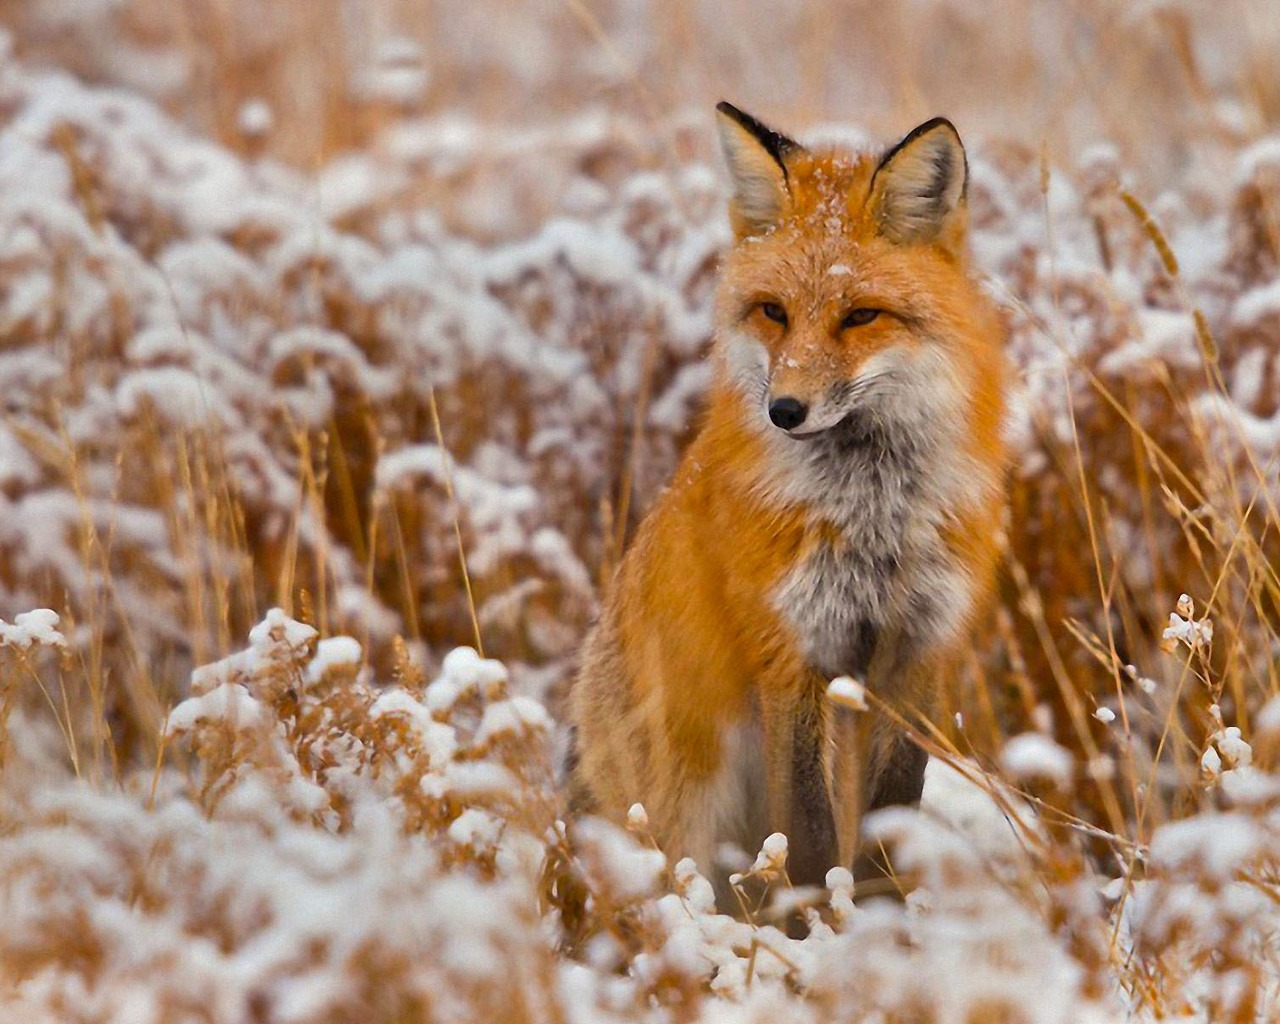 ... Red Fox Wallpapers. These desktop wallpapers are high definition and available in wide range of sizes and resolutions. Download Full HD Wallpapers ...